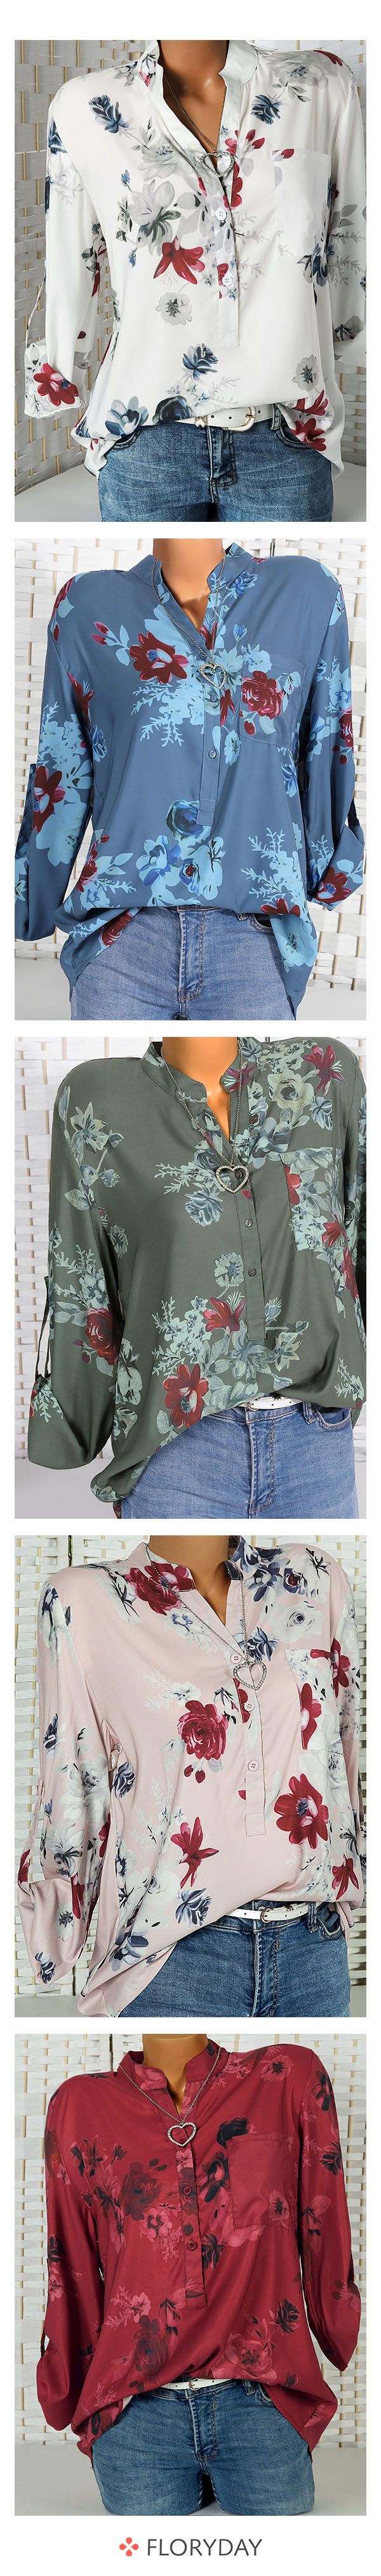 Photo of Long sleeved blouses with a floral pattern and stand-up collar